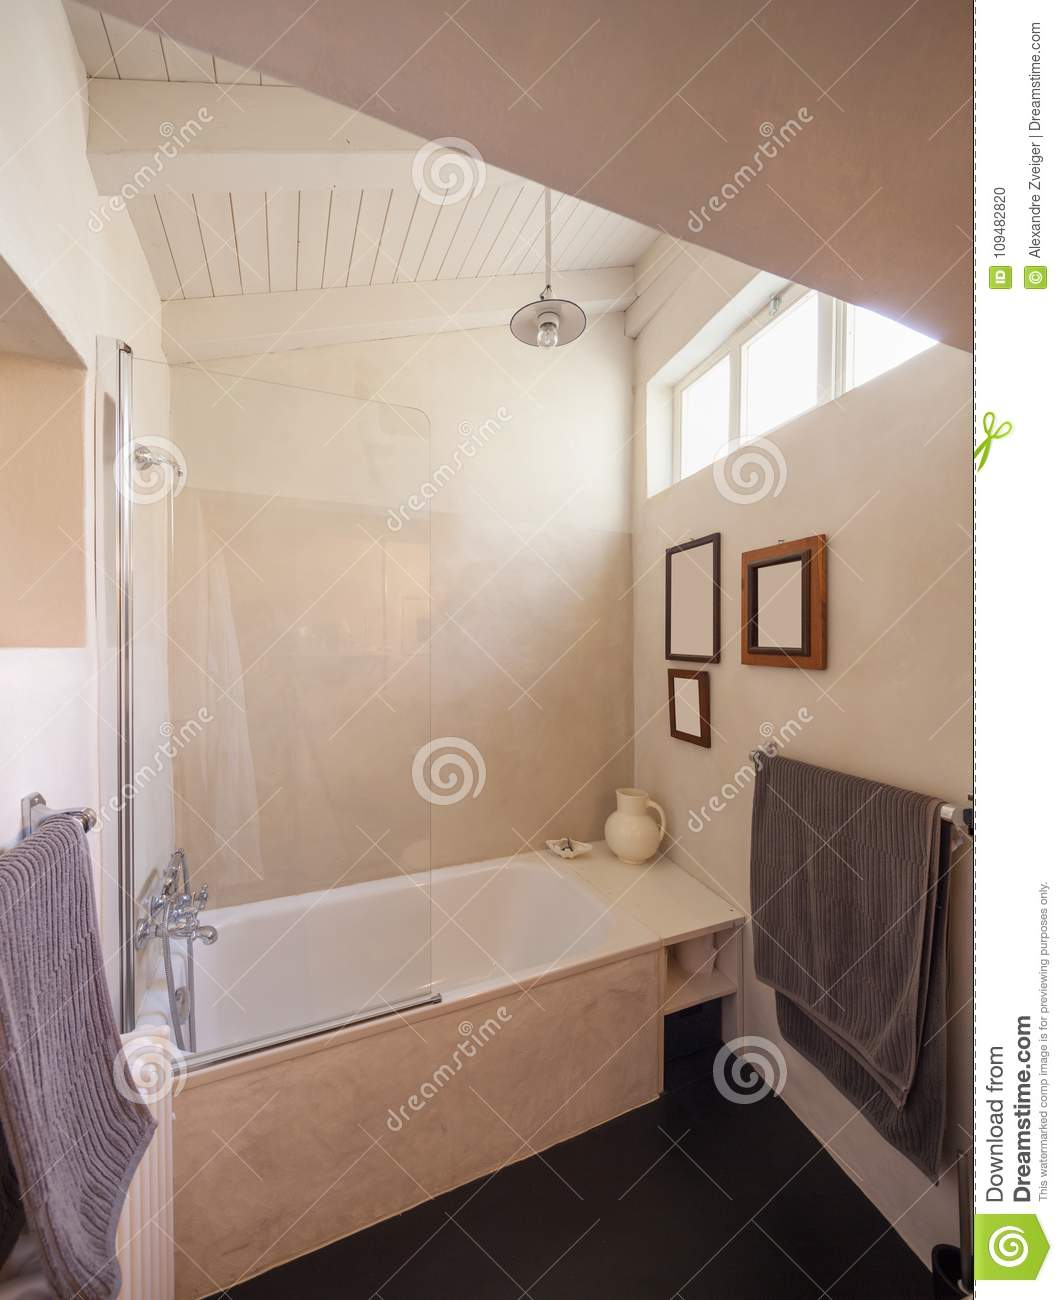 interior of vintage house bathroom stock photo image of wooden rh dreamstime com marble counters in a bathroom marble floor in a bathroom